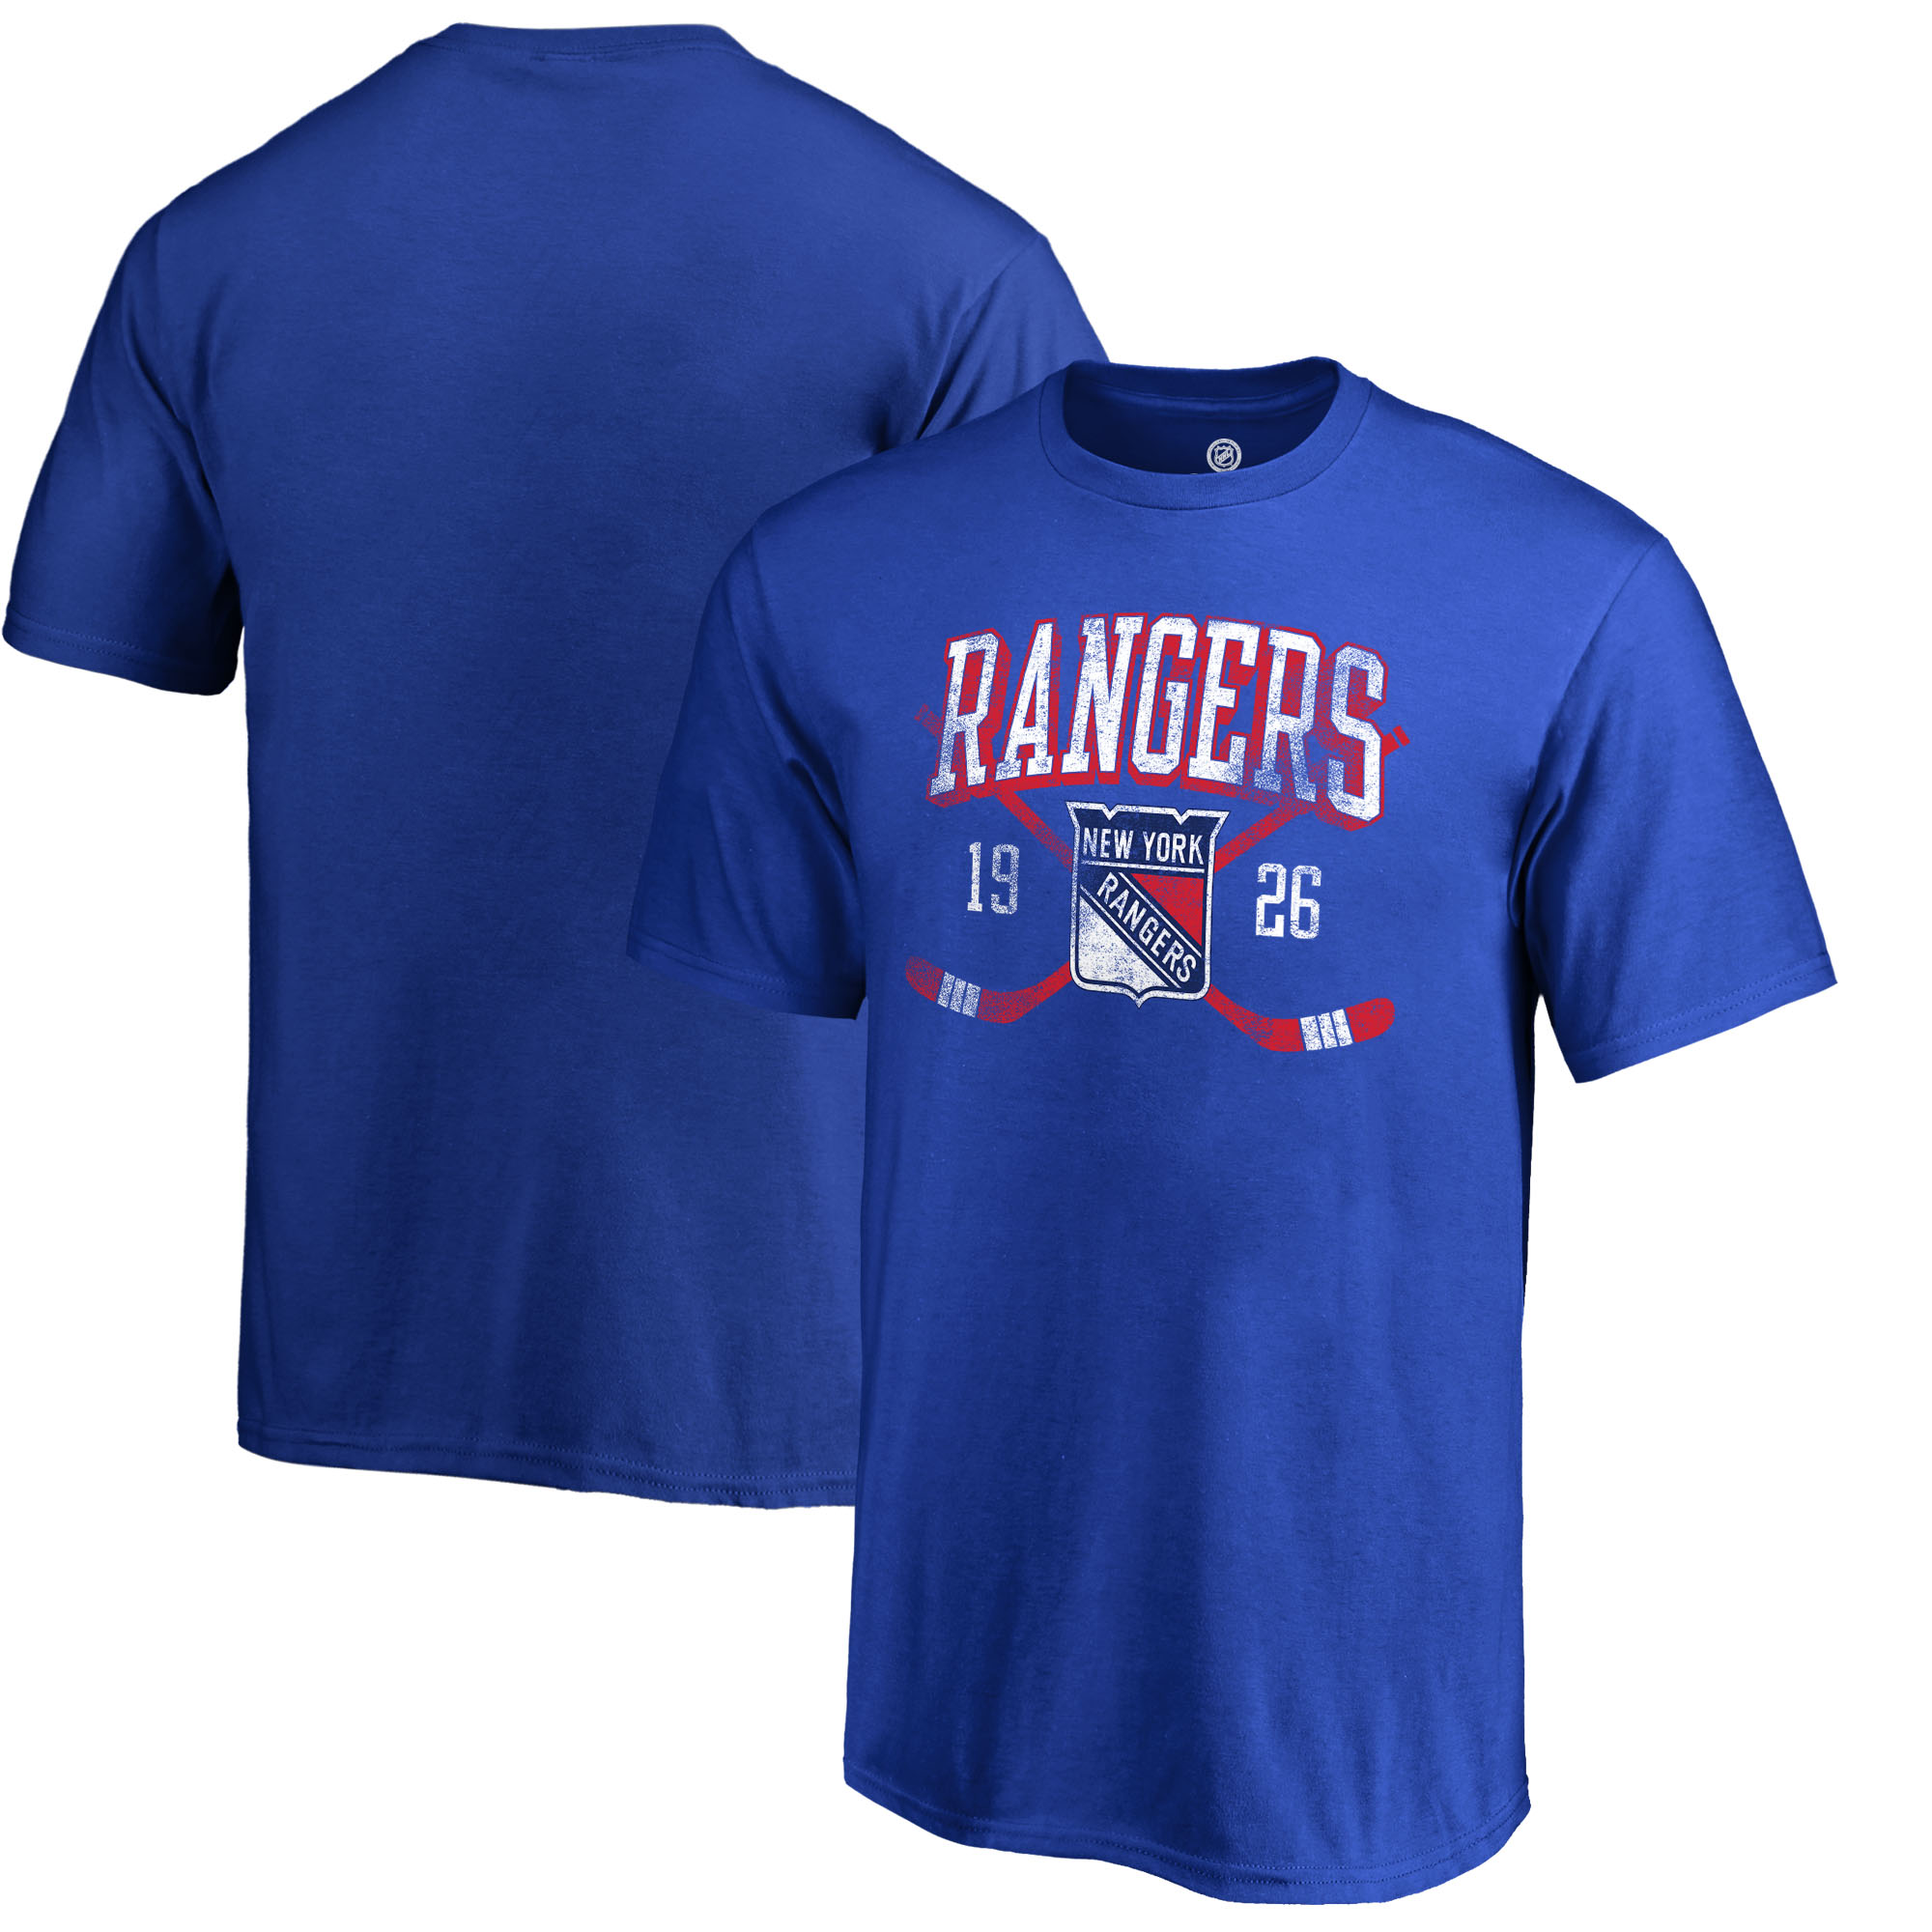 New York Rangers Fanatics Branded Youth Vintage Collection Line Shift T-Shirt - Royal